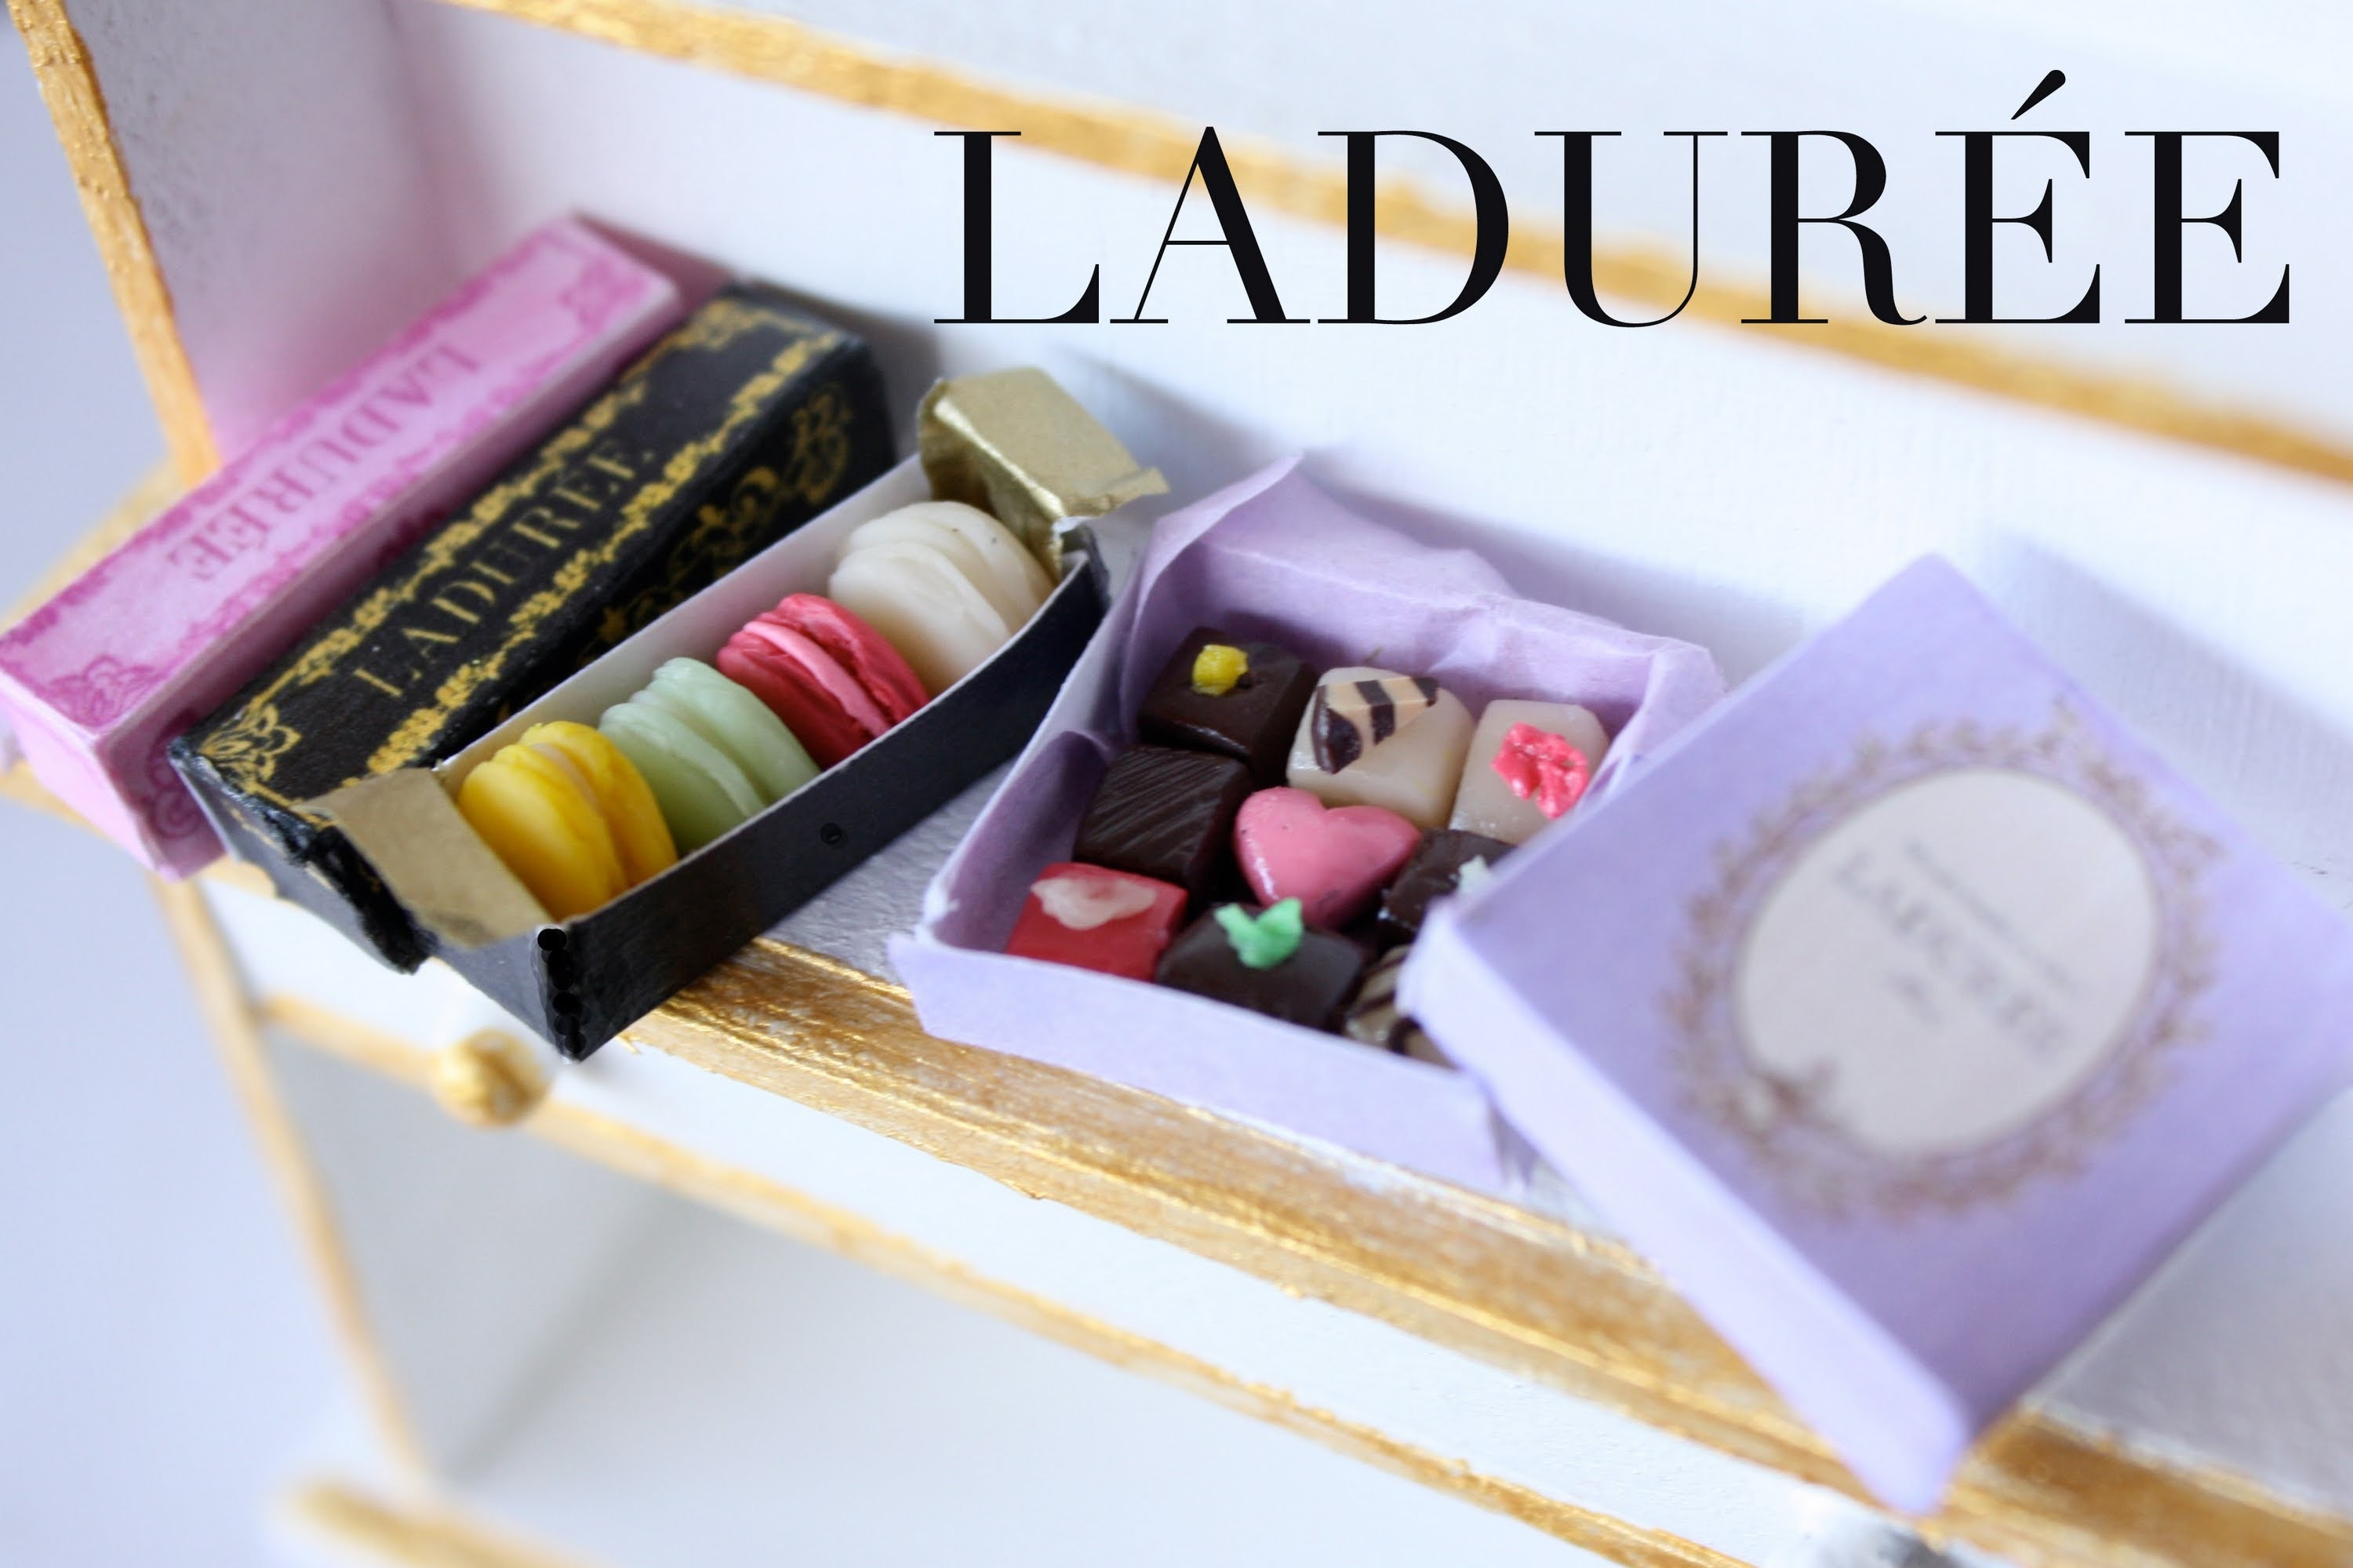 Ladurée Macarons & Chocolate - Polymer Clay Tutorial